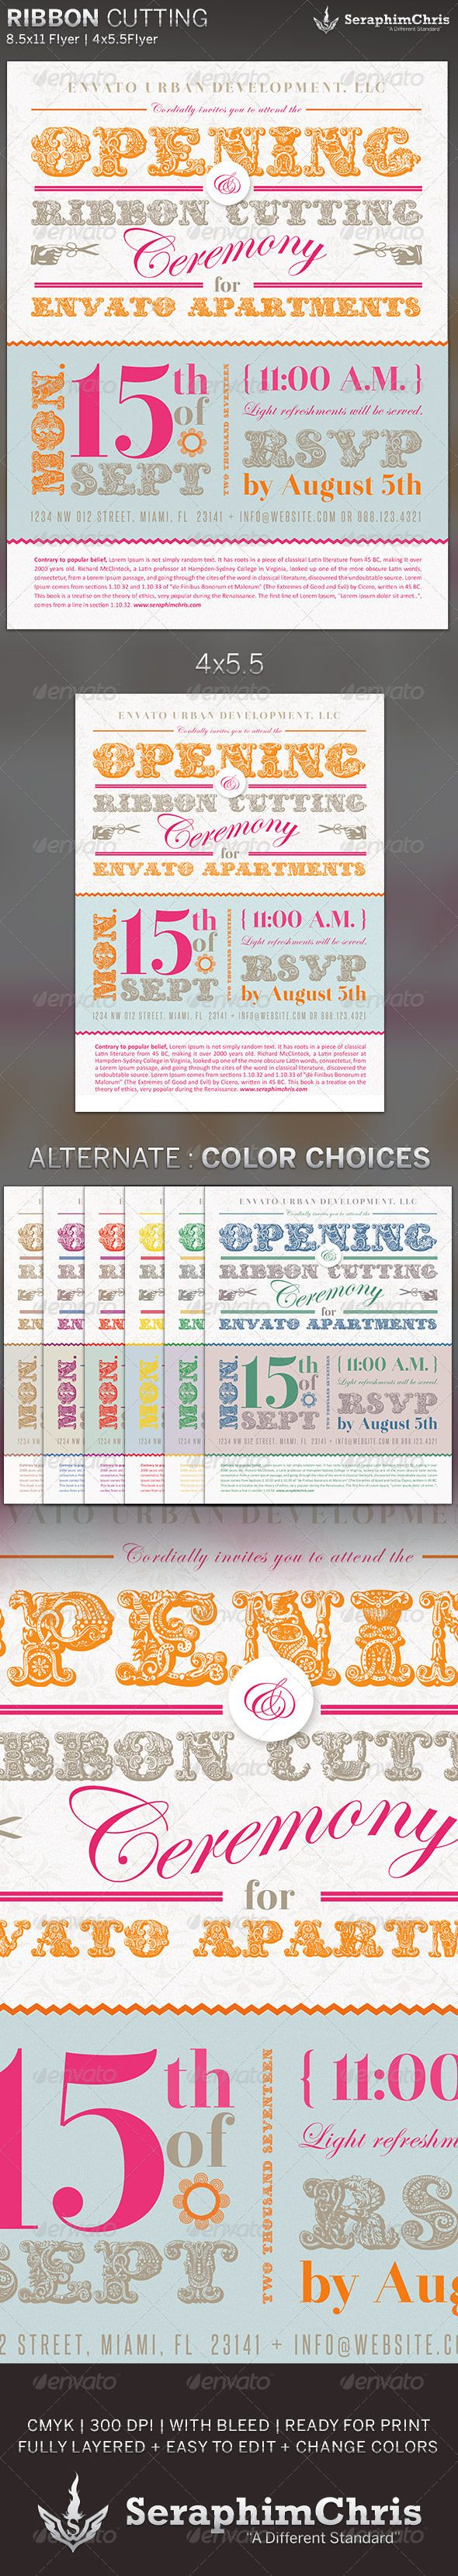 ribbon cutting flyer invite template classy ribbons and festivals ribbon cutting flyer invite template 6 00 this ribbon cutting flyer invite template is customized for special